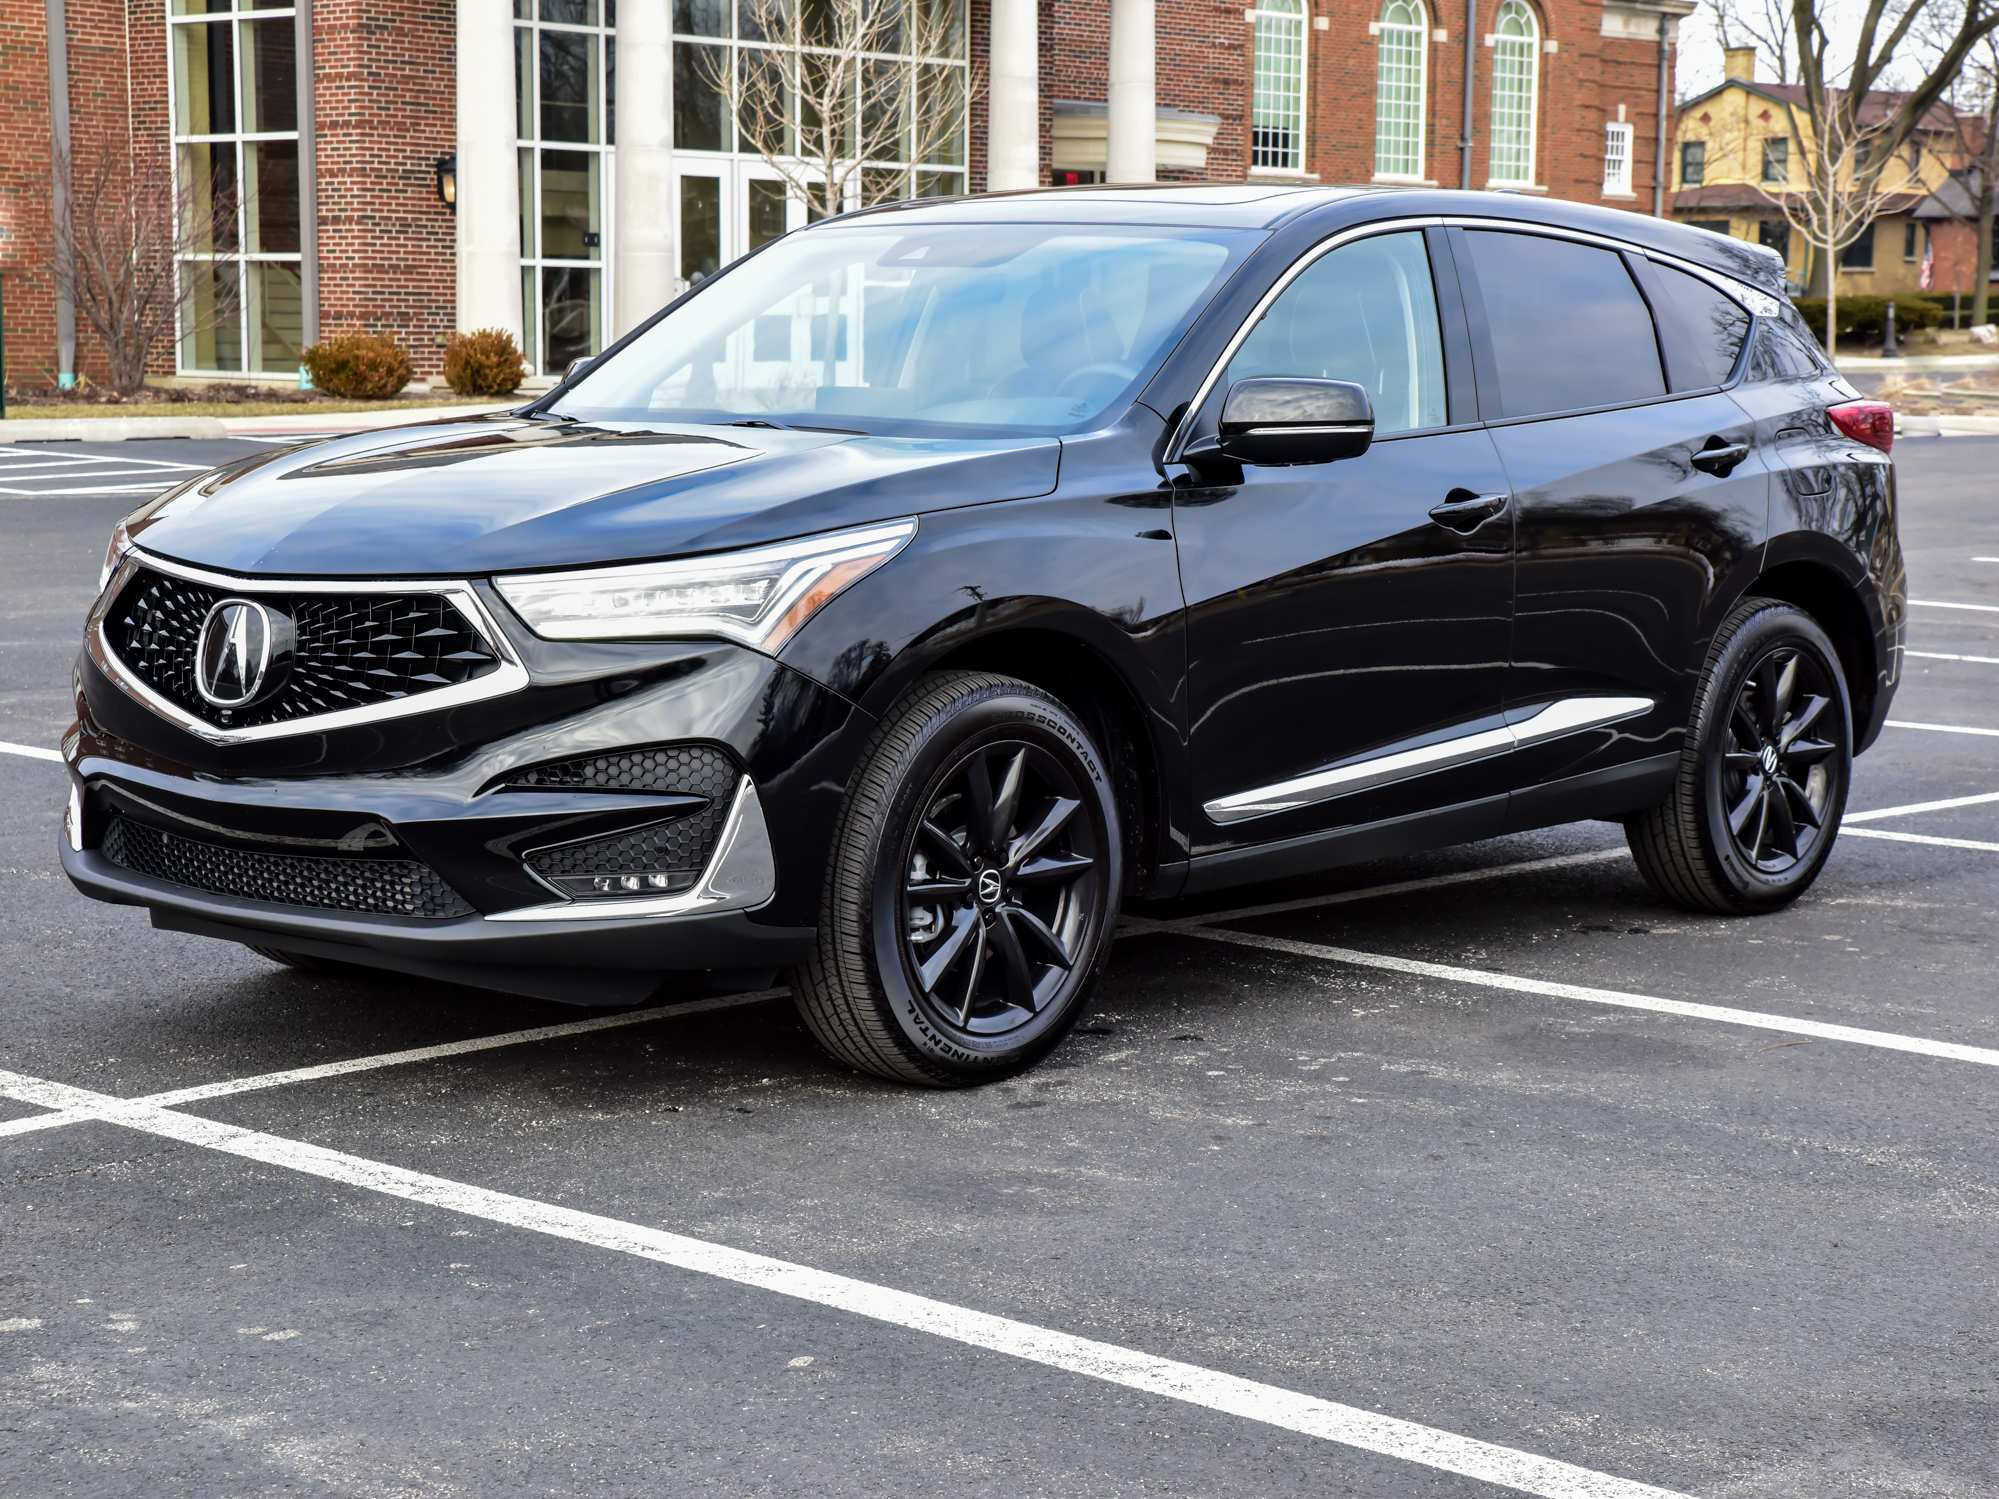 89 All New Acura Rdx 2020 Review Spy Shoot by Acura Rdx 2020 Review